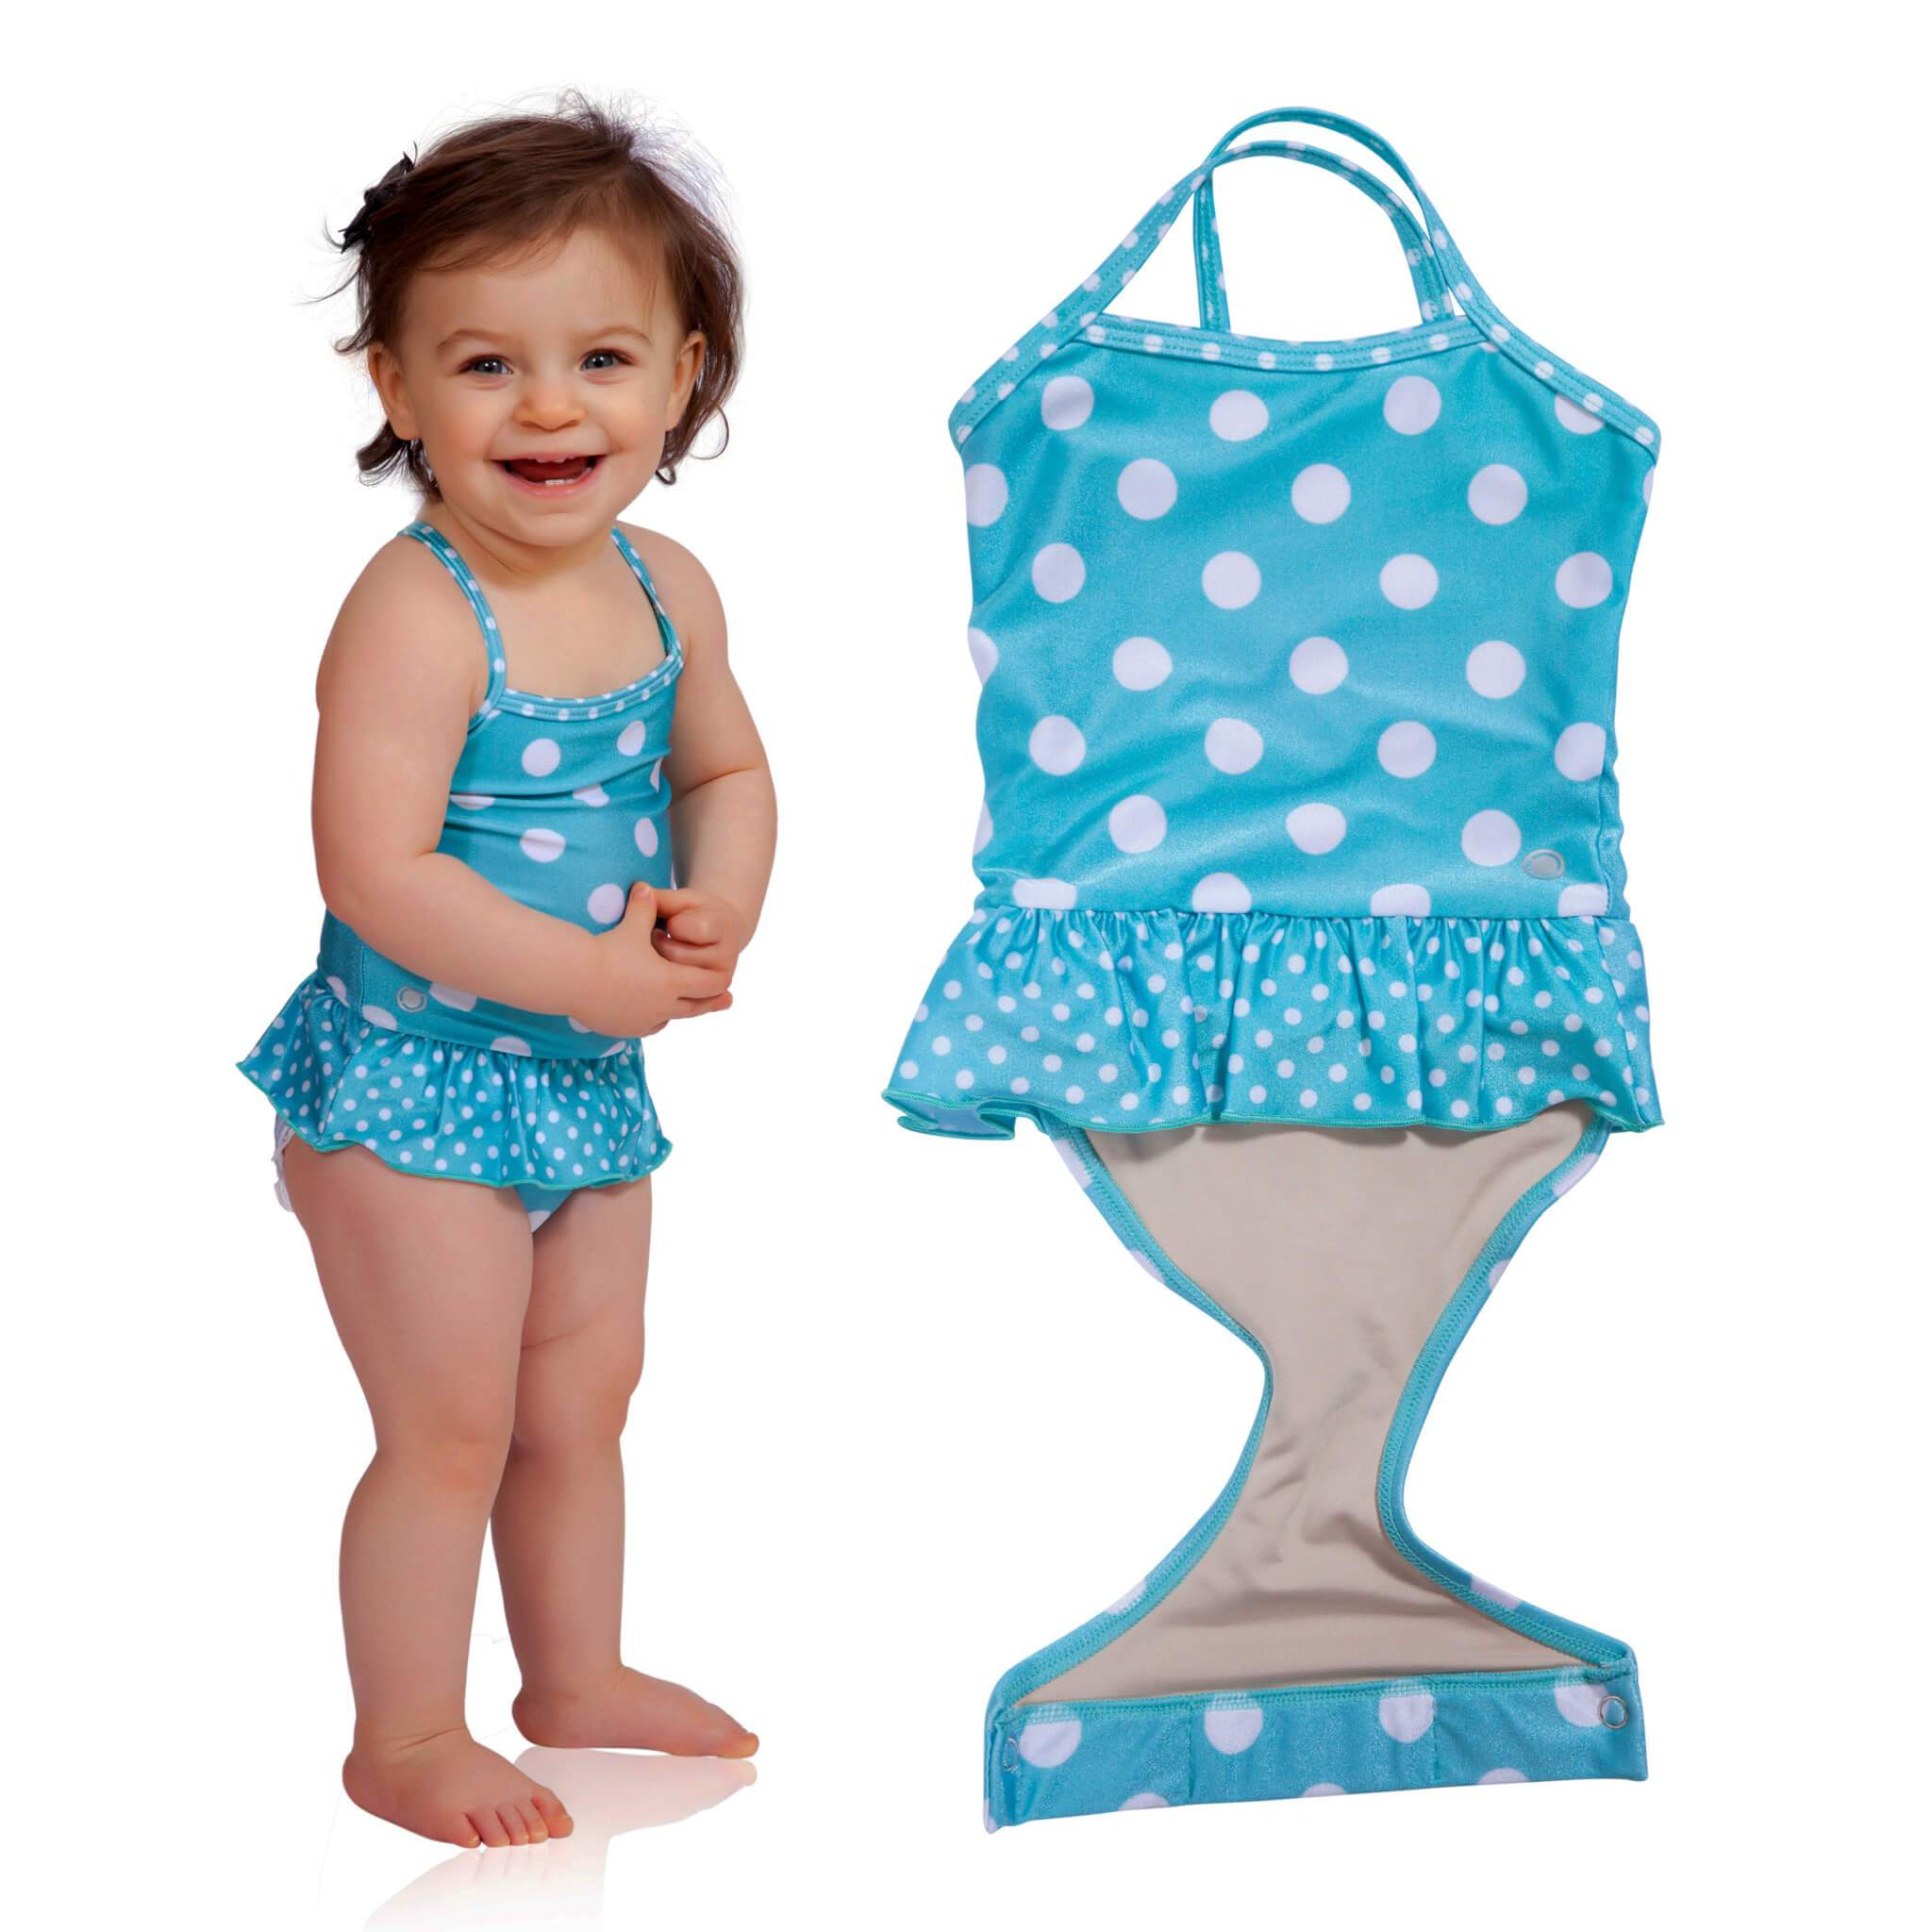 514ae6d4b0e60 Aqua Polka Dot toddler girl swimsuit with ruffle by FASTEN. Features  patented design that opens at the waist, making diaper changes and bathroom  breaks ...